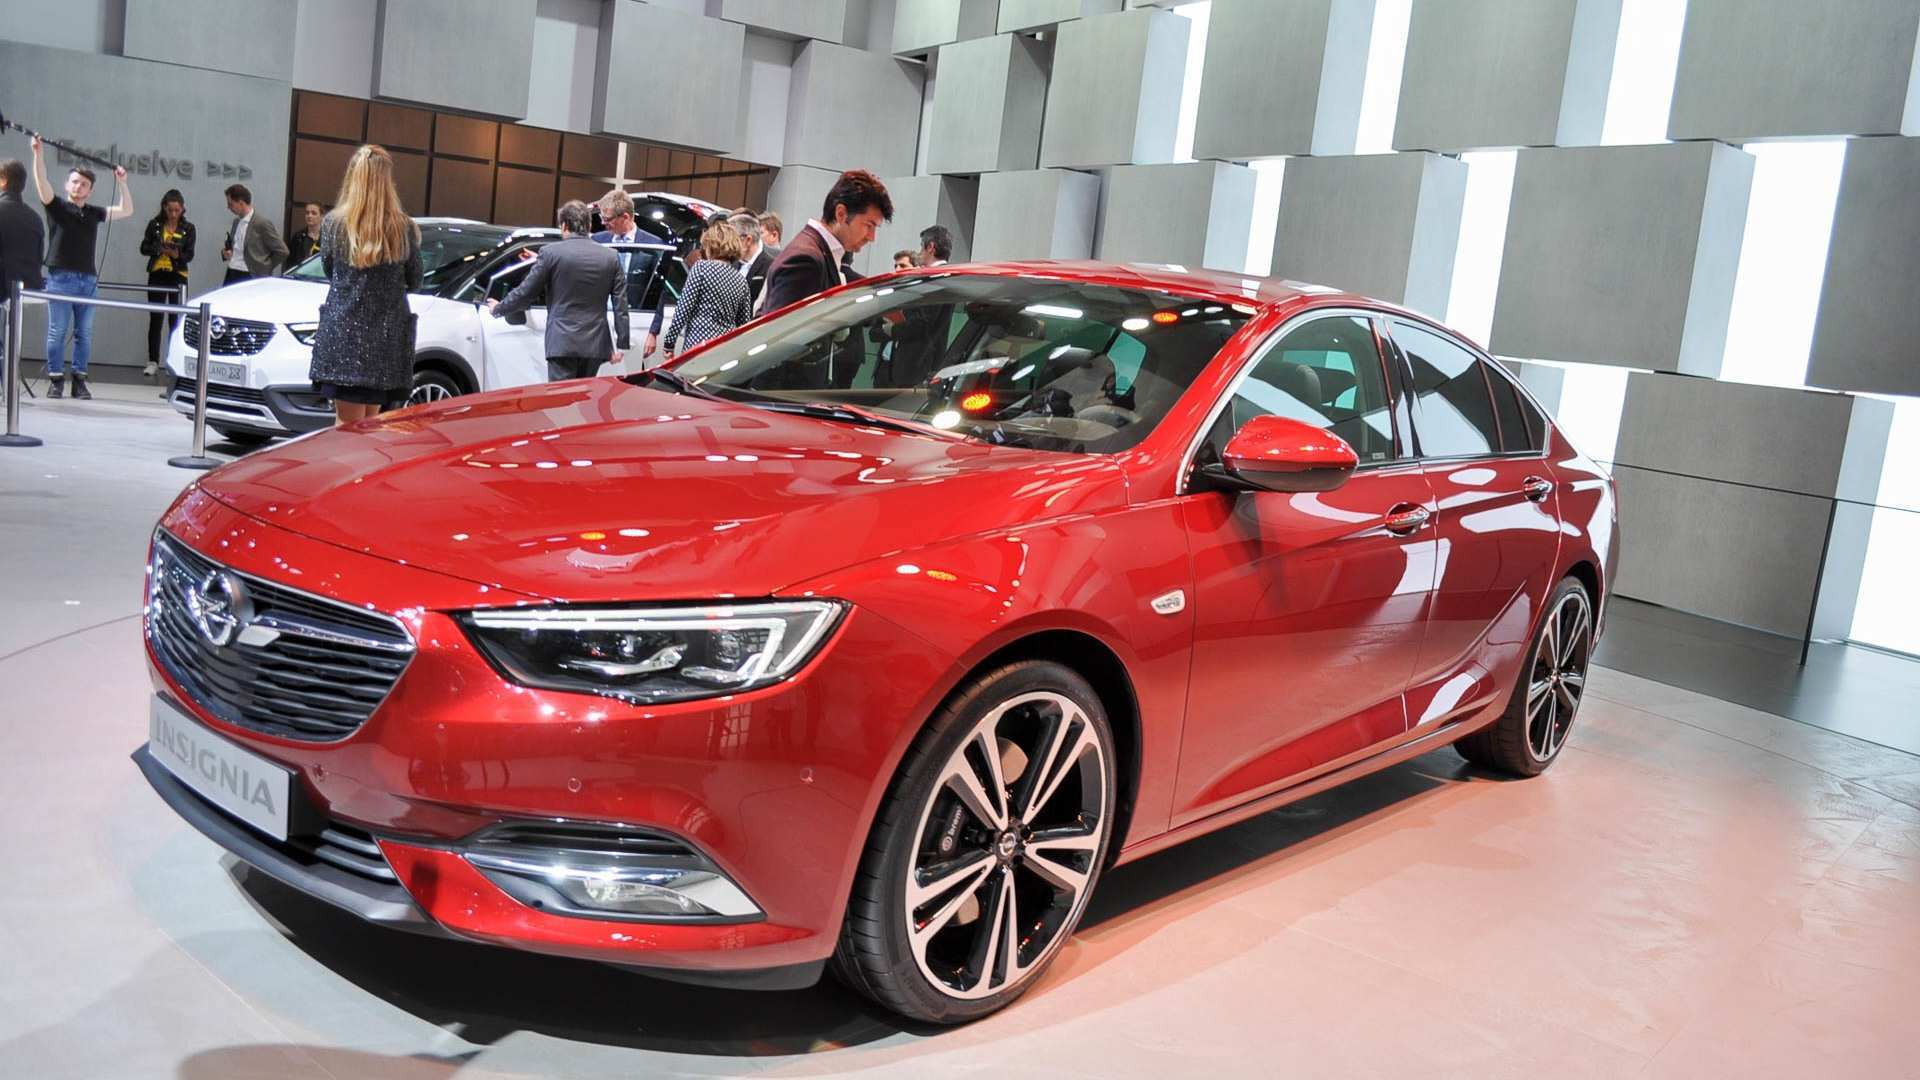 63 Concept of New Opel Insignia 2020 Redesign and Concept with New Opel Insignia 2020